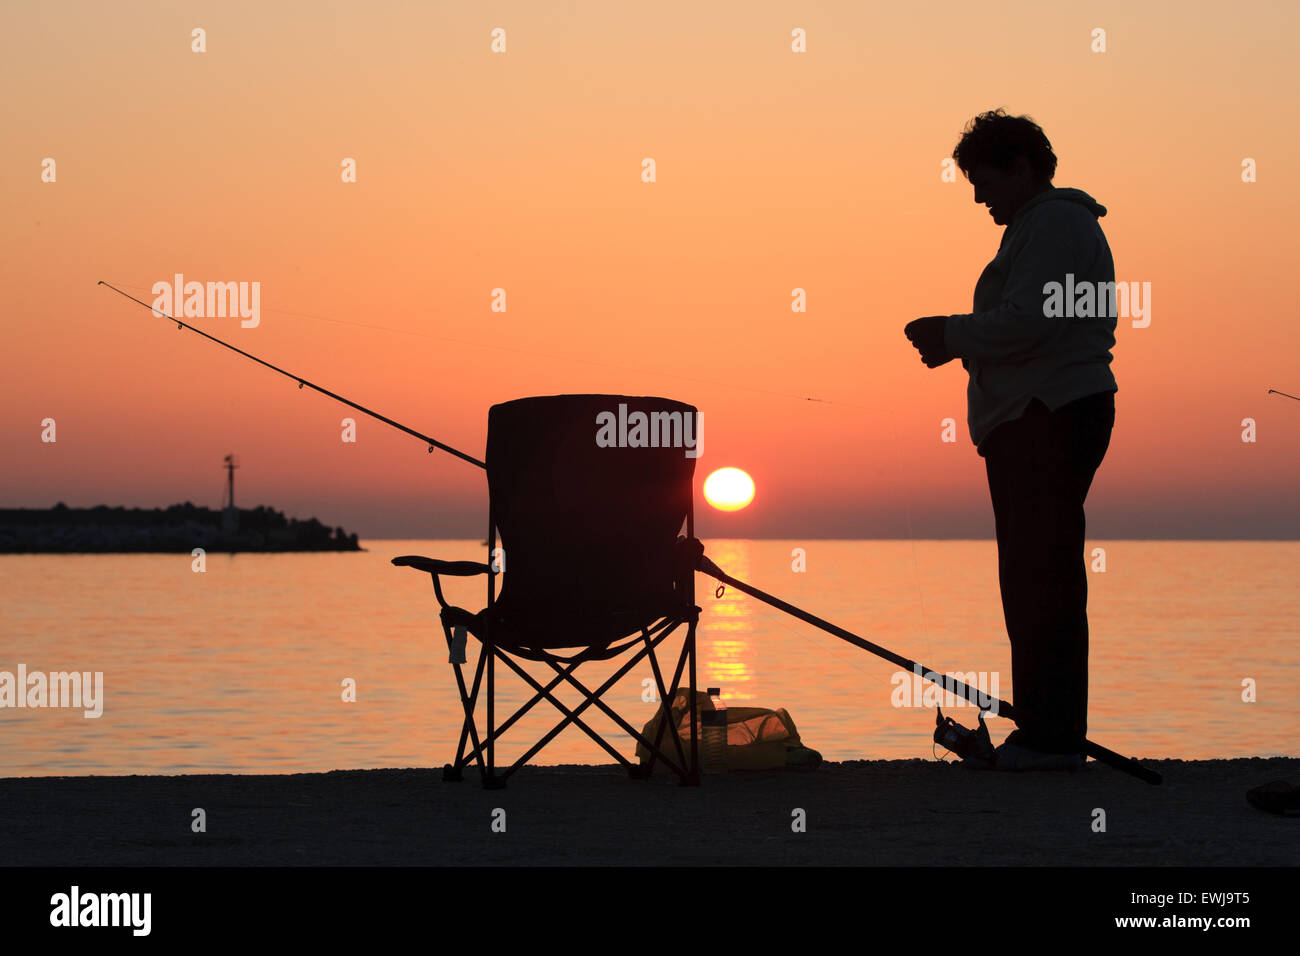 Woman in silhouete prepares fishing bait. Myrina city sunset. Lemnos / Limnos island, Greece/ Hellas. Copy space - Stock Image